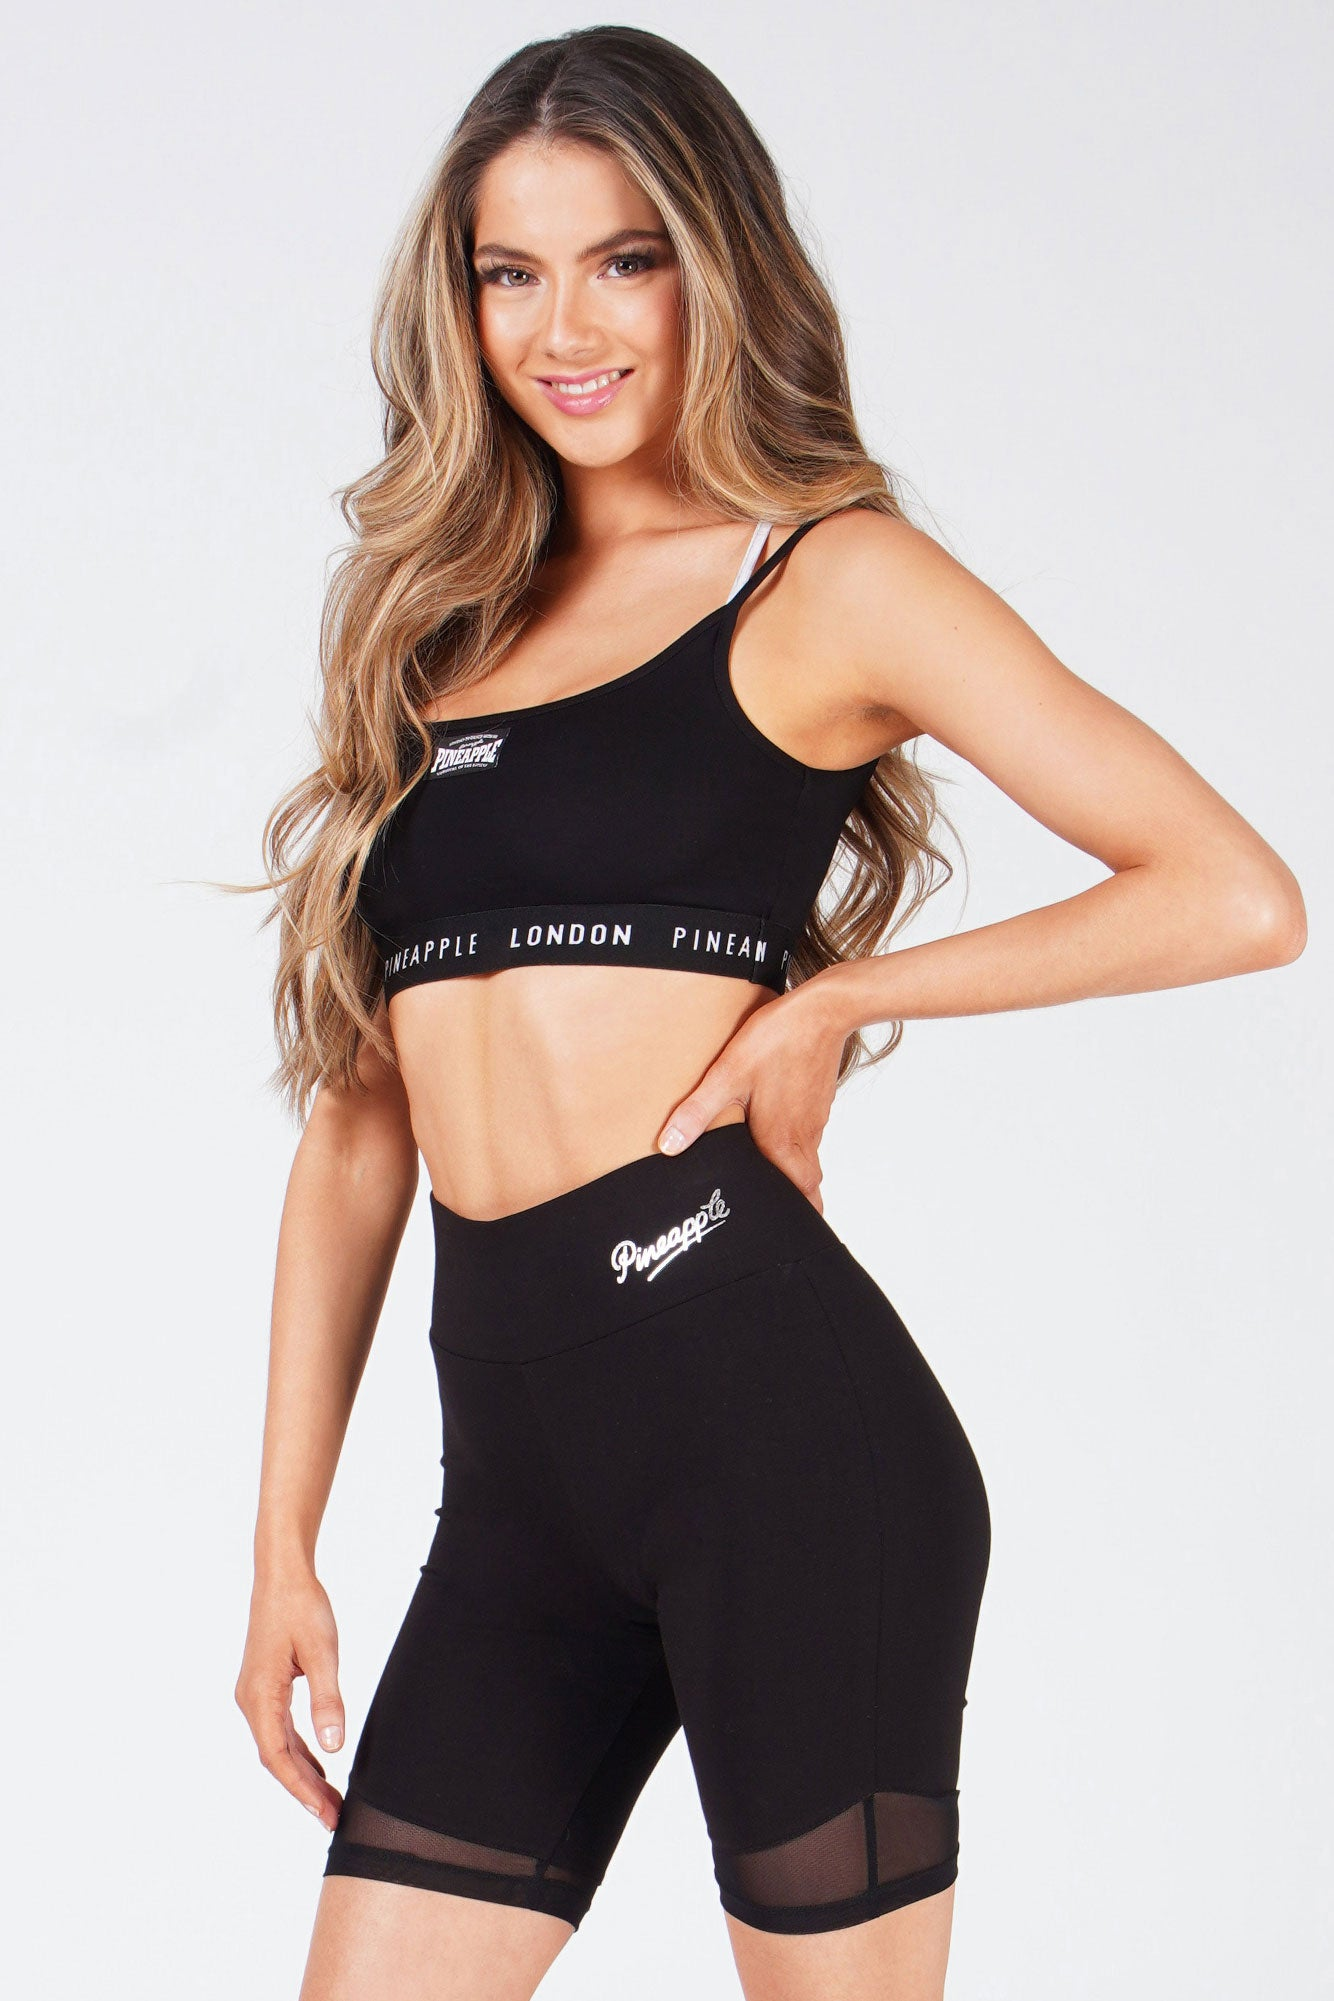 Woman wearing Cross Strap Black Bra Top and black cycling shorts